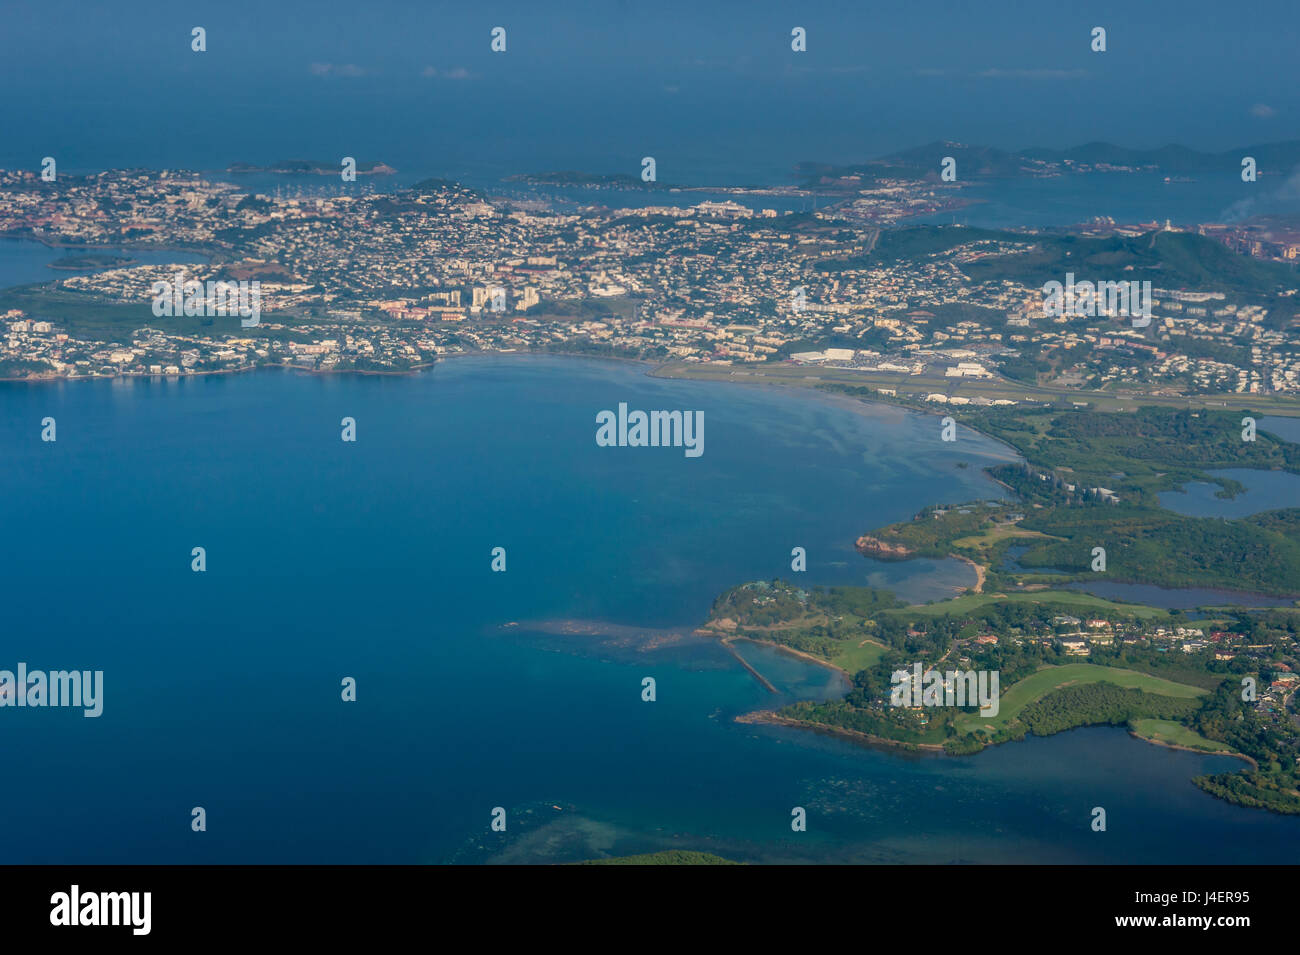 Aerial of Noumea, New Caledonia, Pacific - Stock Image